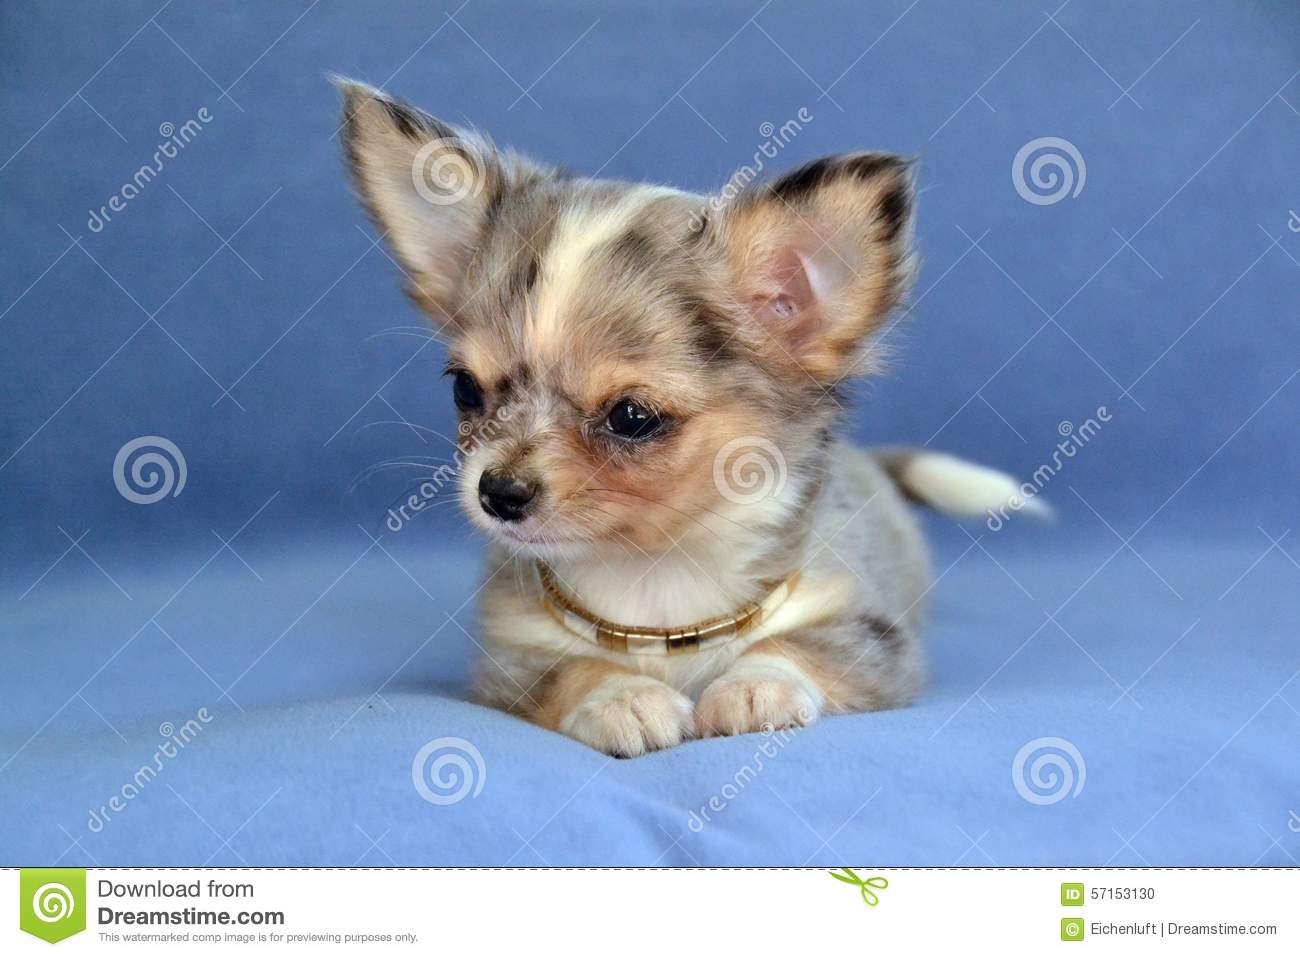 Blue Merle Chihuahua Puppy 8 Weeks Old Photos Free Royalty Free Stock Photos From Dreamstime